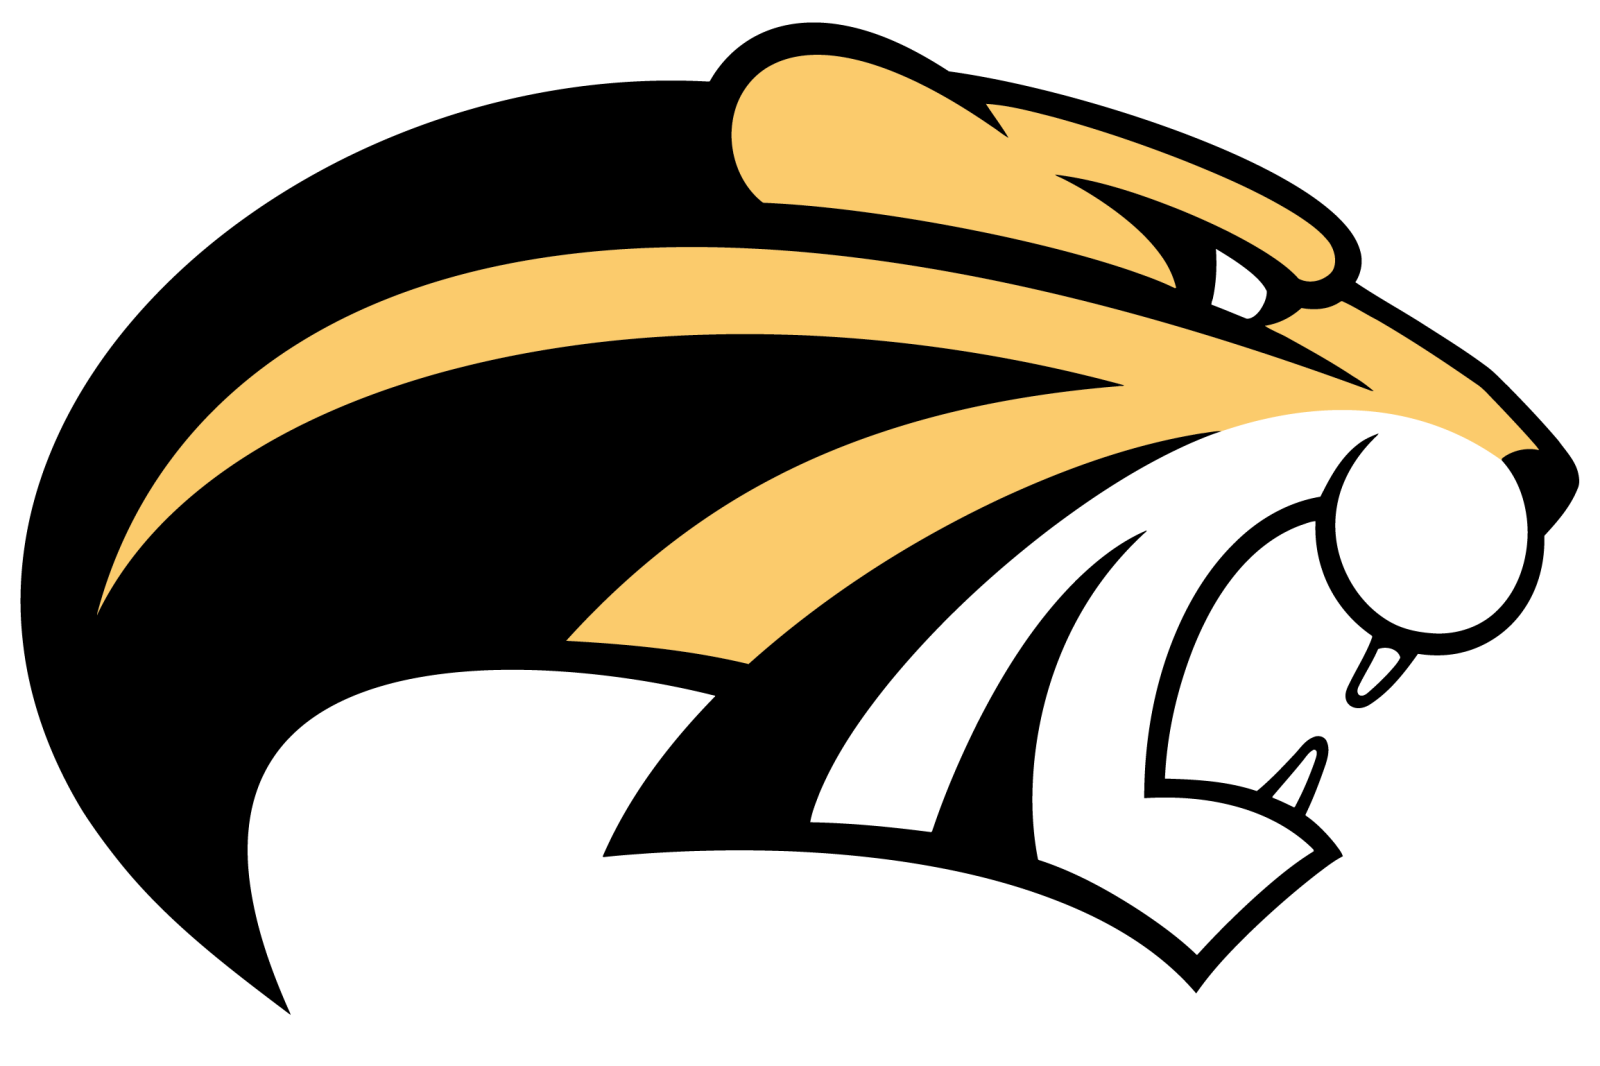 Brenau University Golden Tigers athletic logo